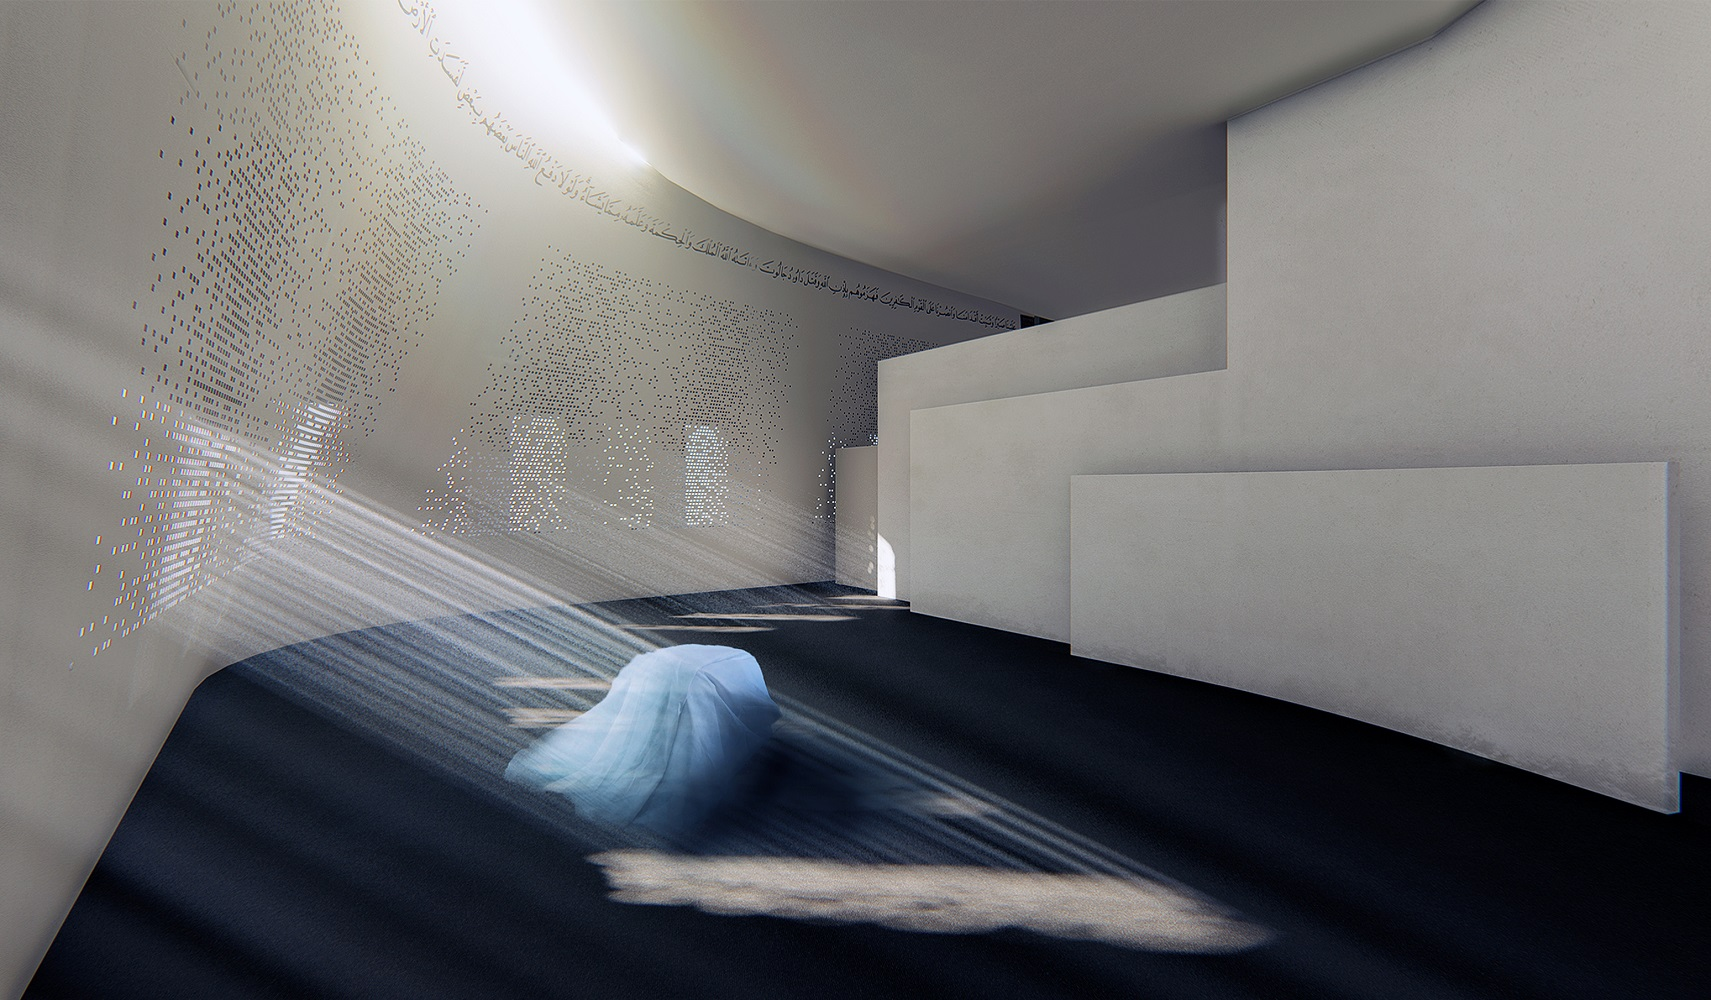 http://miragearchitects.ir/index.php/projects/prayer-room/